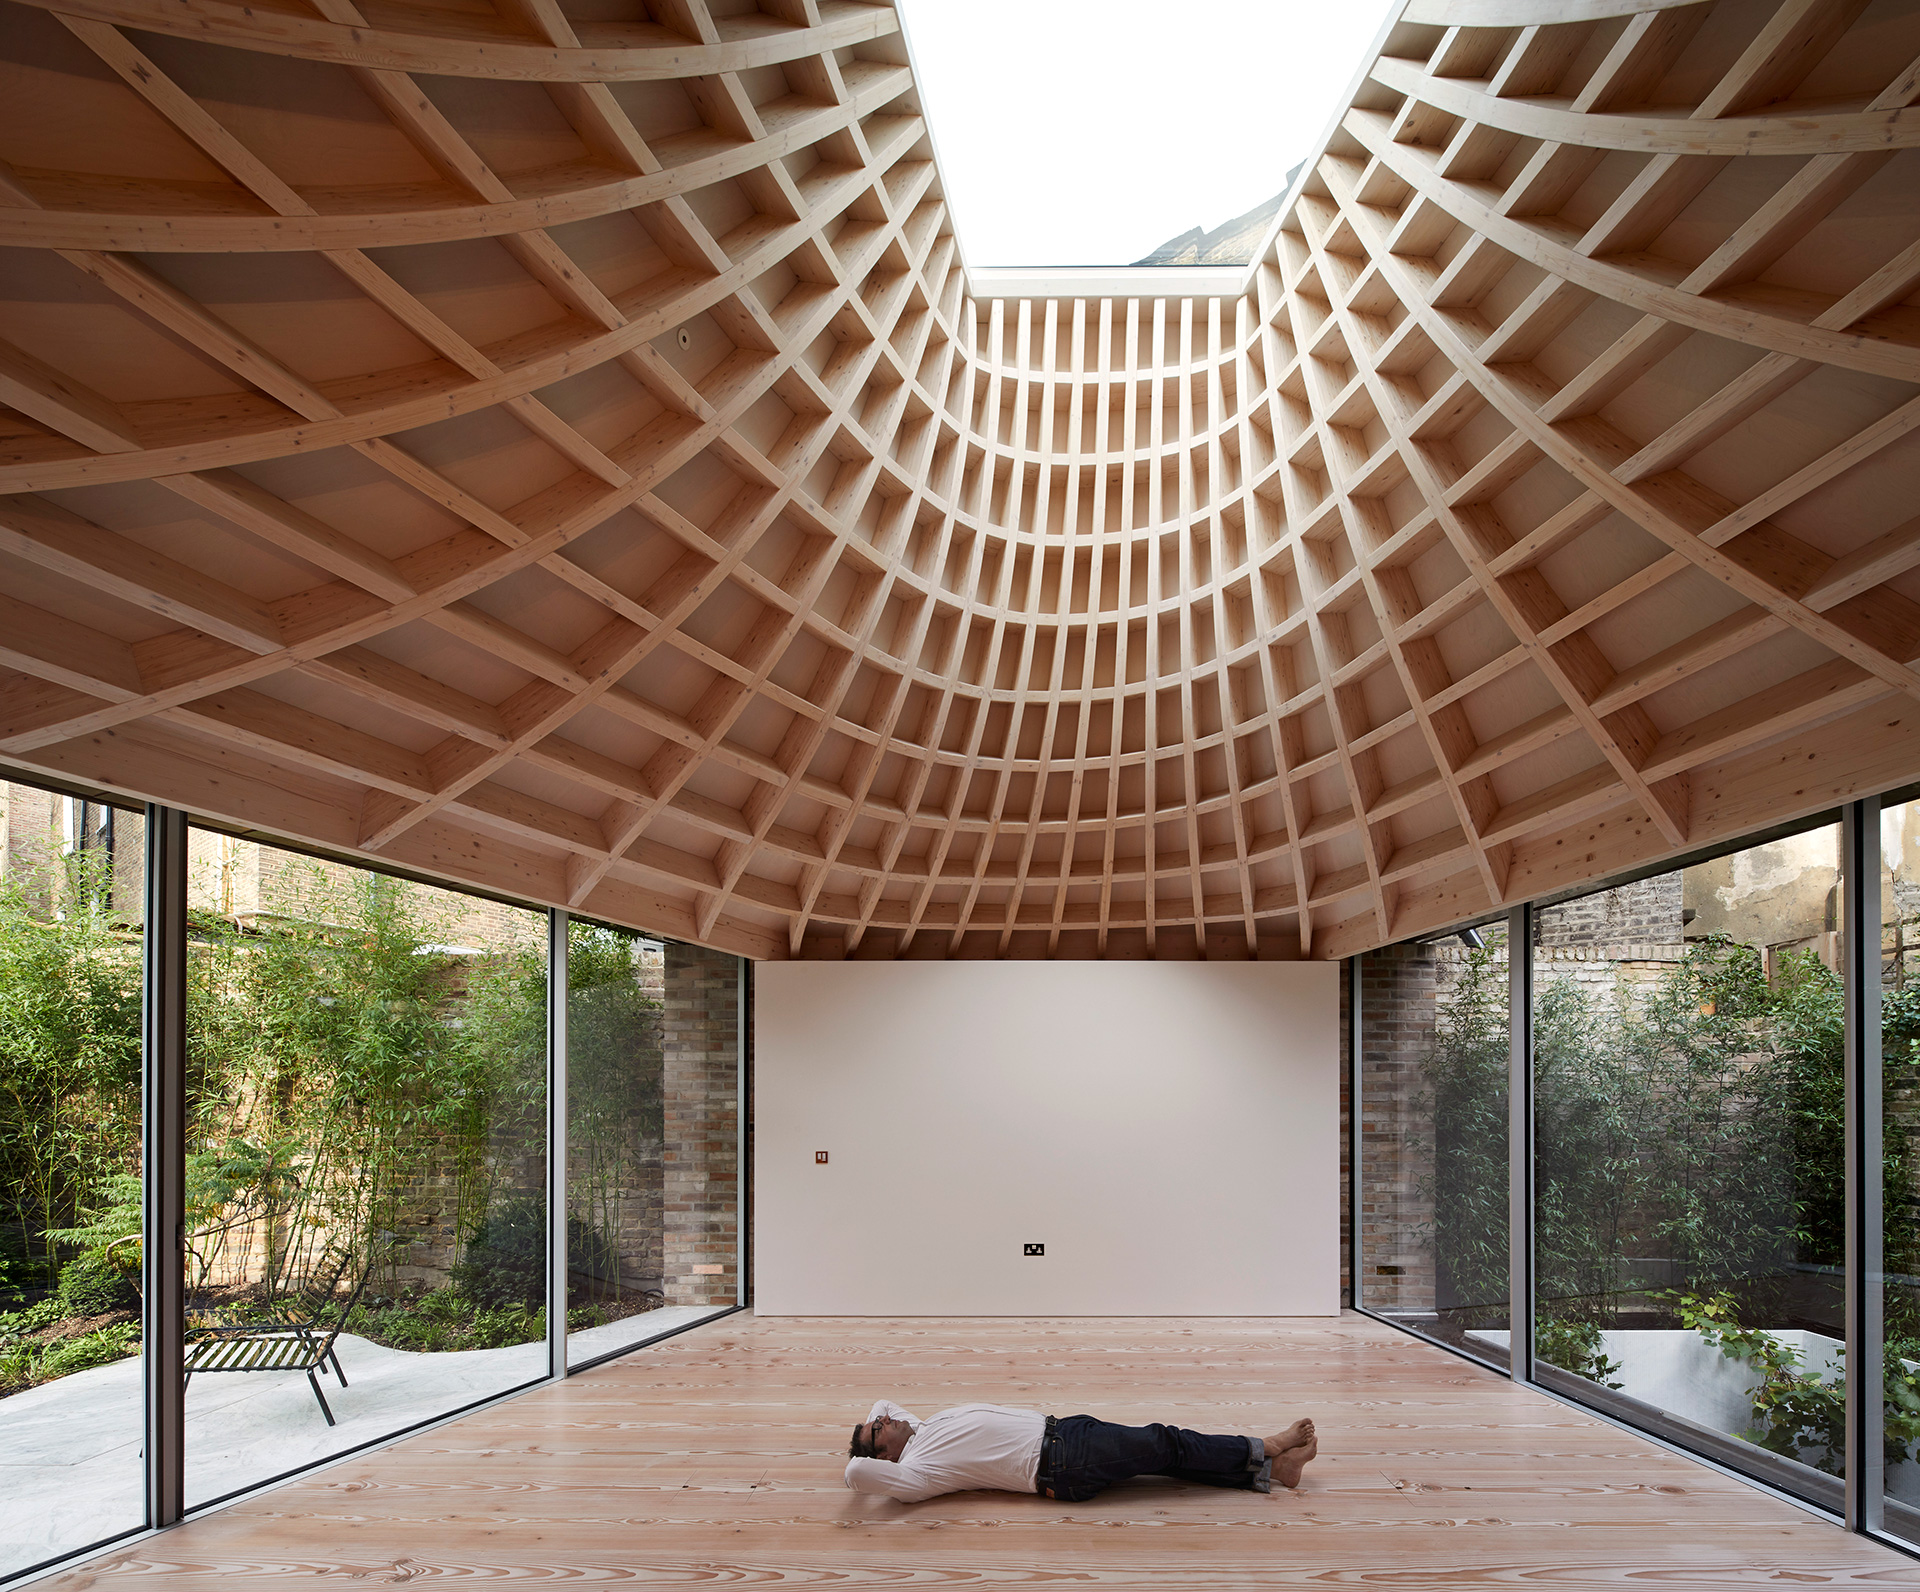 The house is shaped and informed by natural light | House in a Garden, London by Gianni Botsford Architects | STIRworld